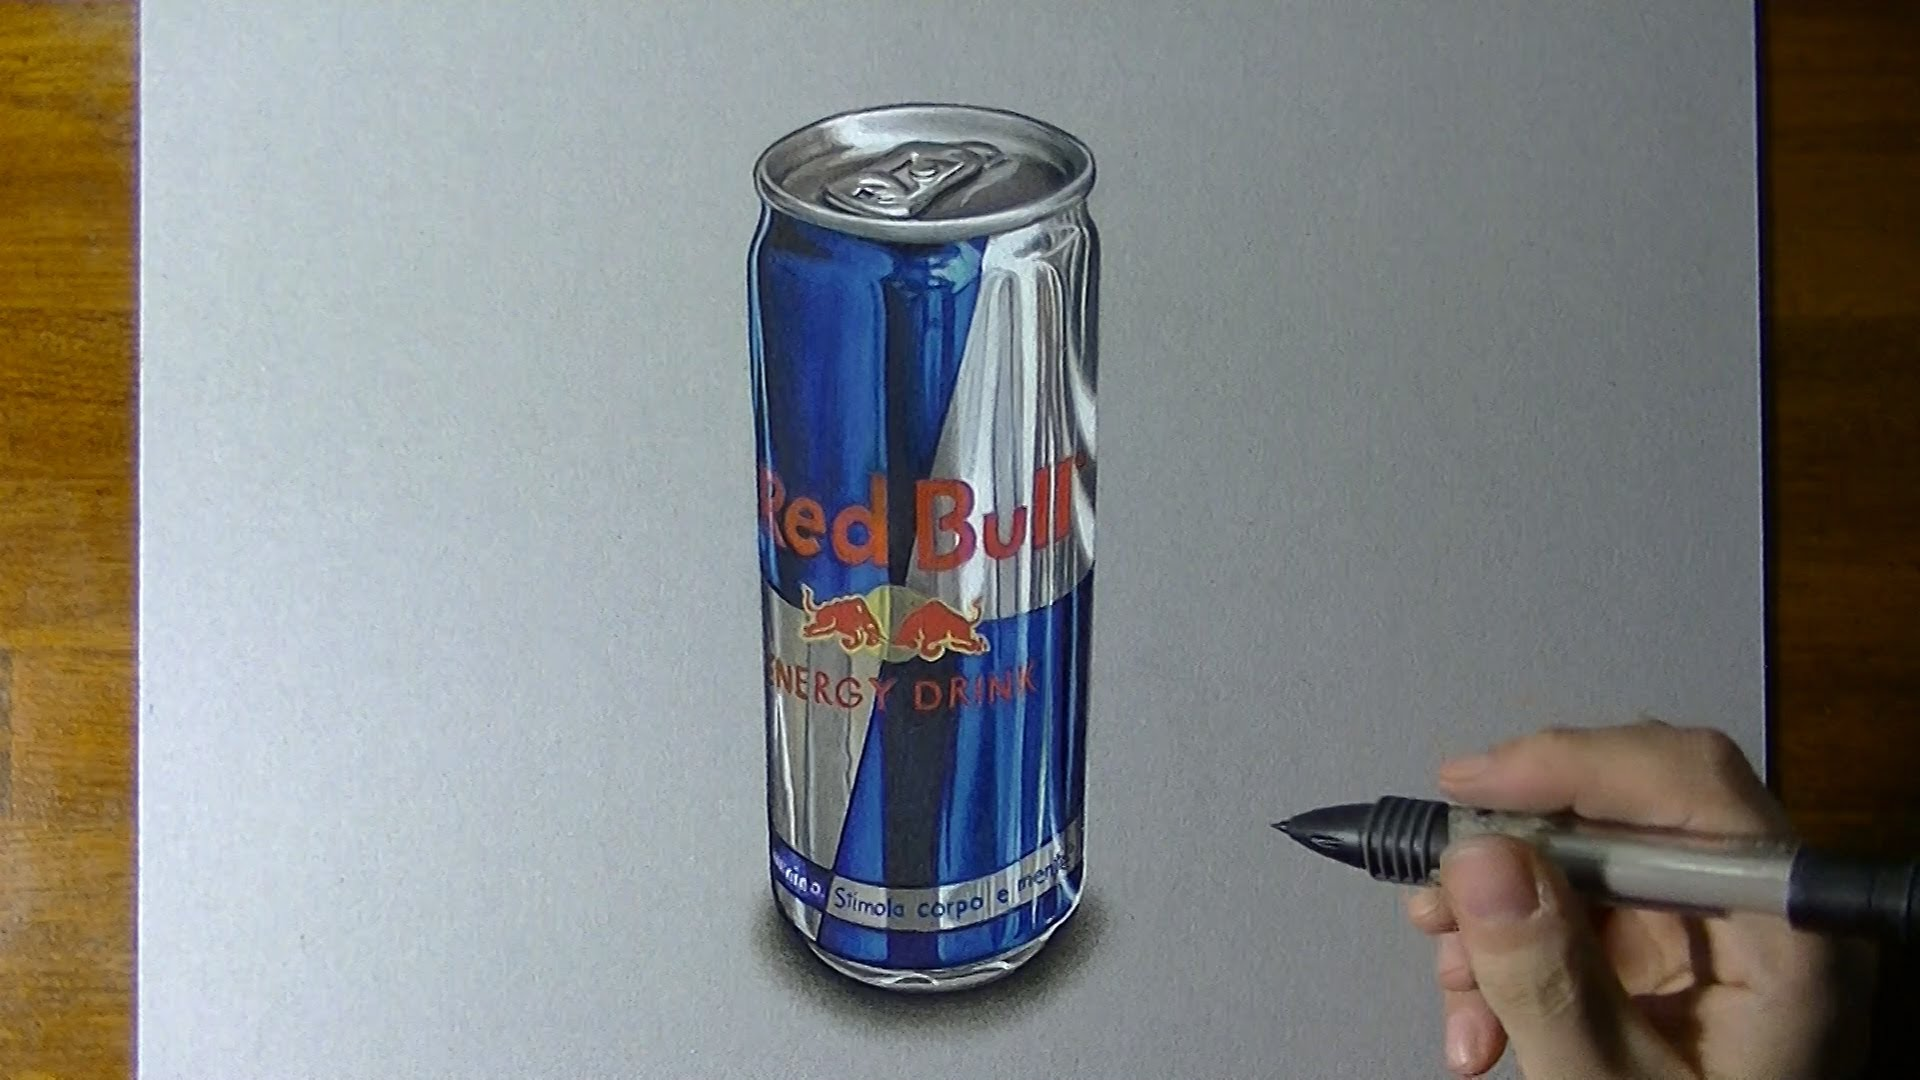 1920x1080 Red Bull Can Timelapse Drawing